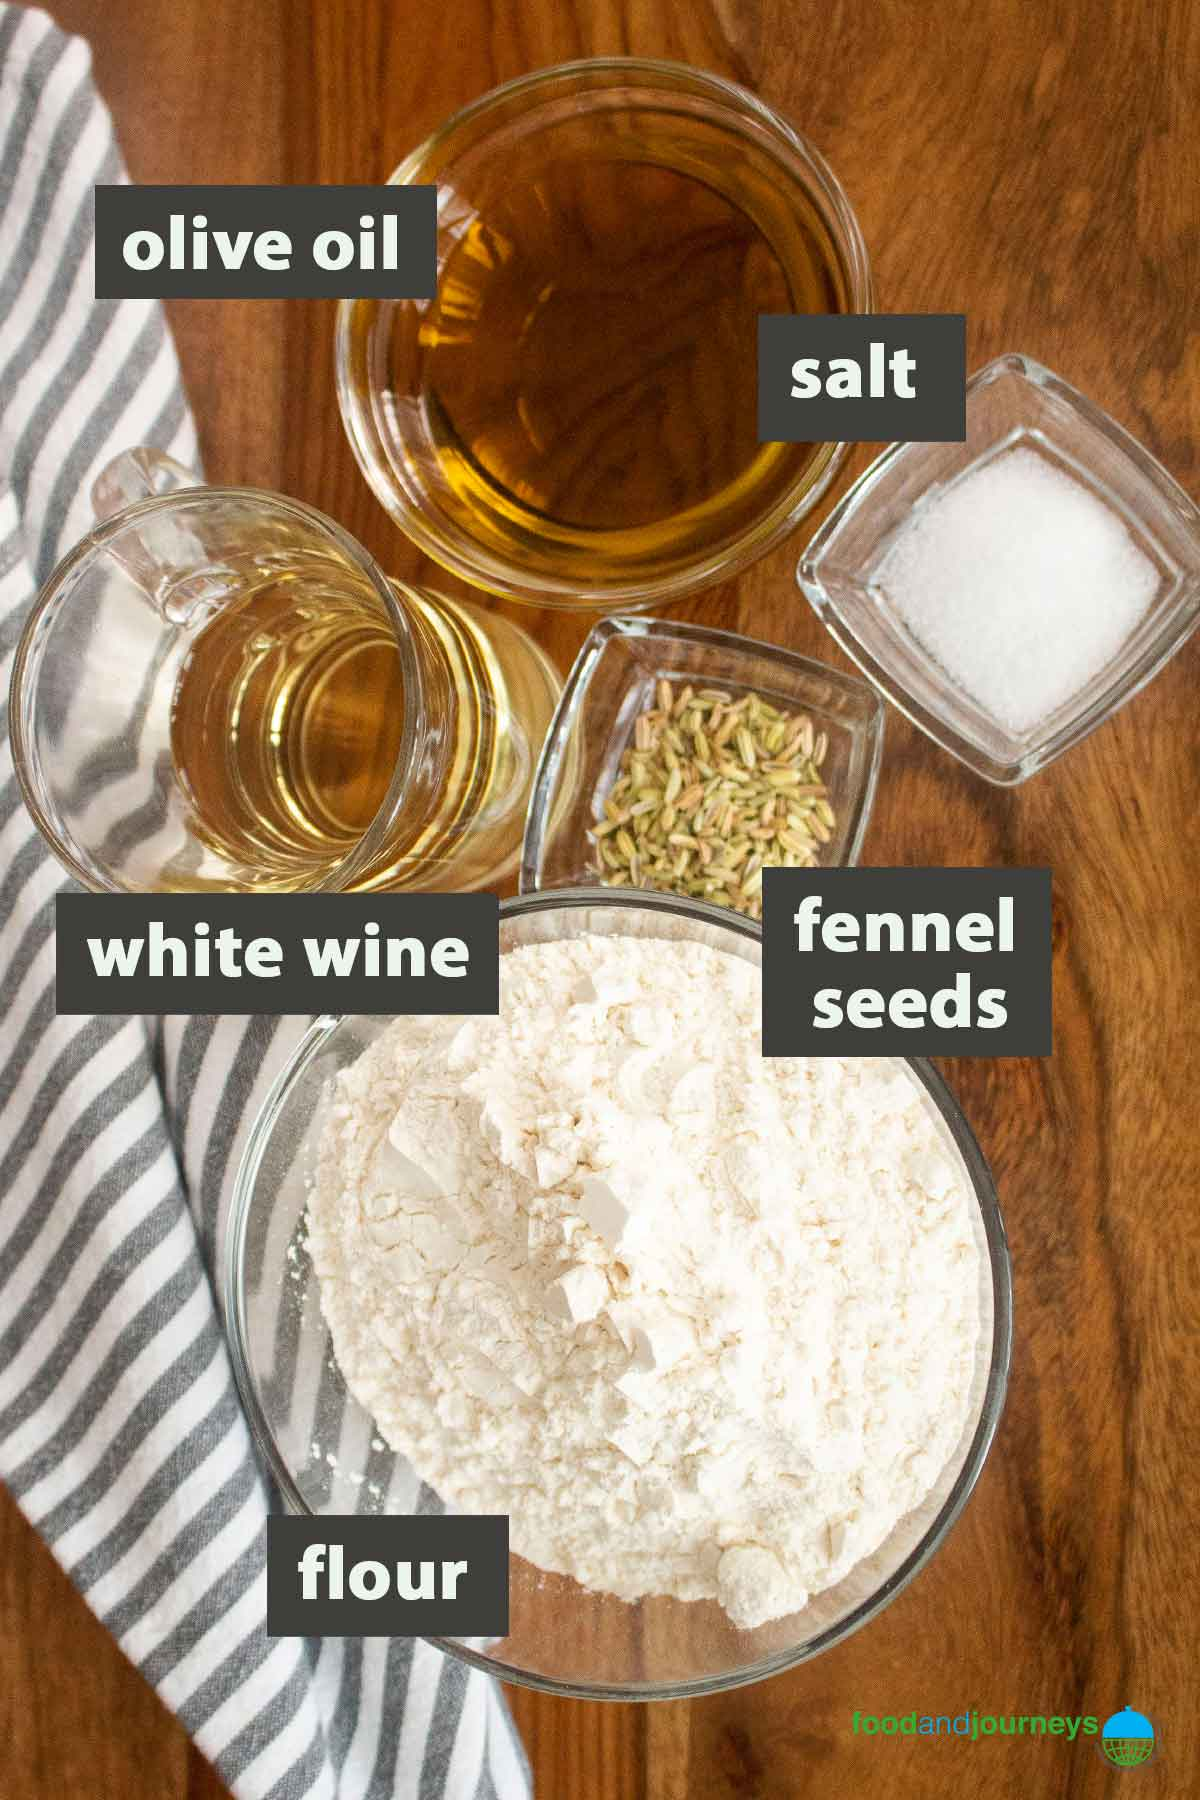 An image showing all the ingredients you need to prepare Taralli Pugliese at home.